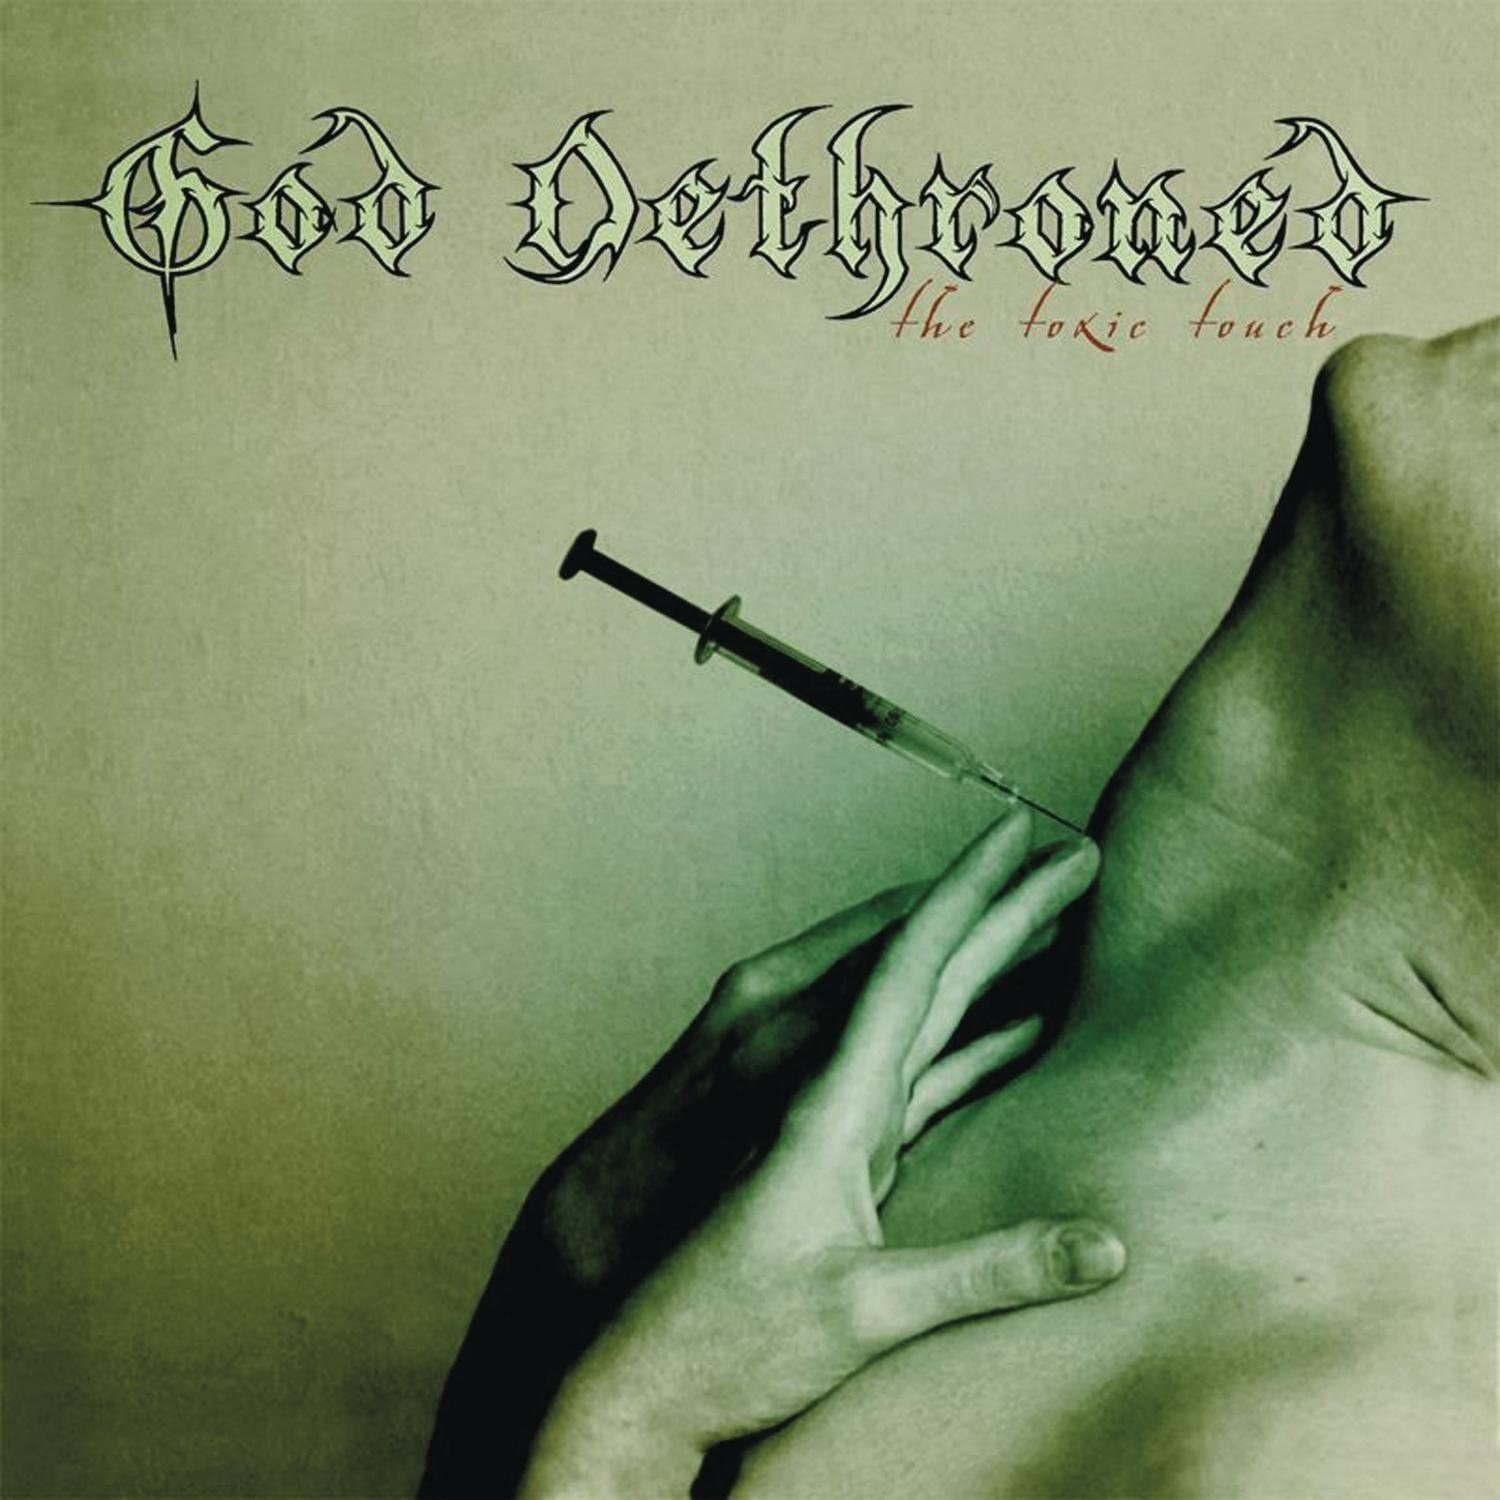 Reviews for God Dethroned - The Toxic Touch